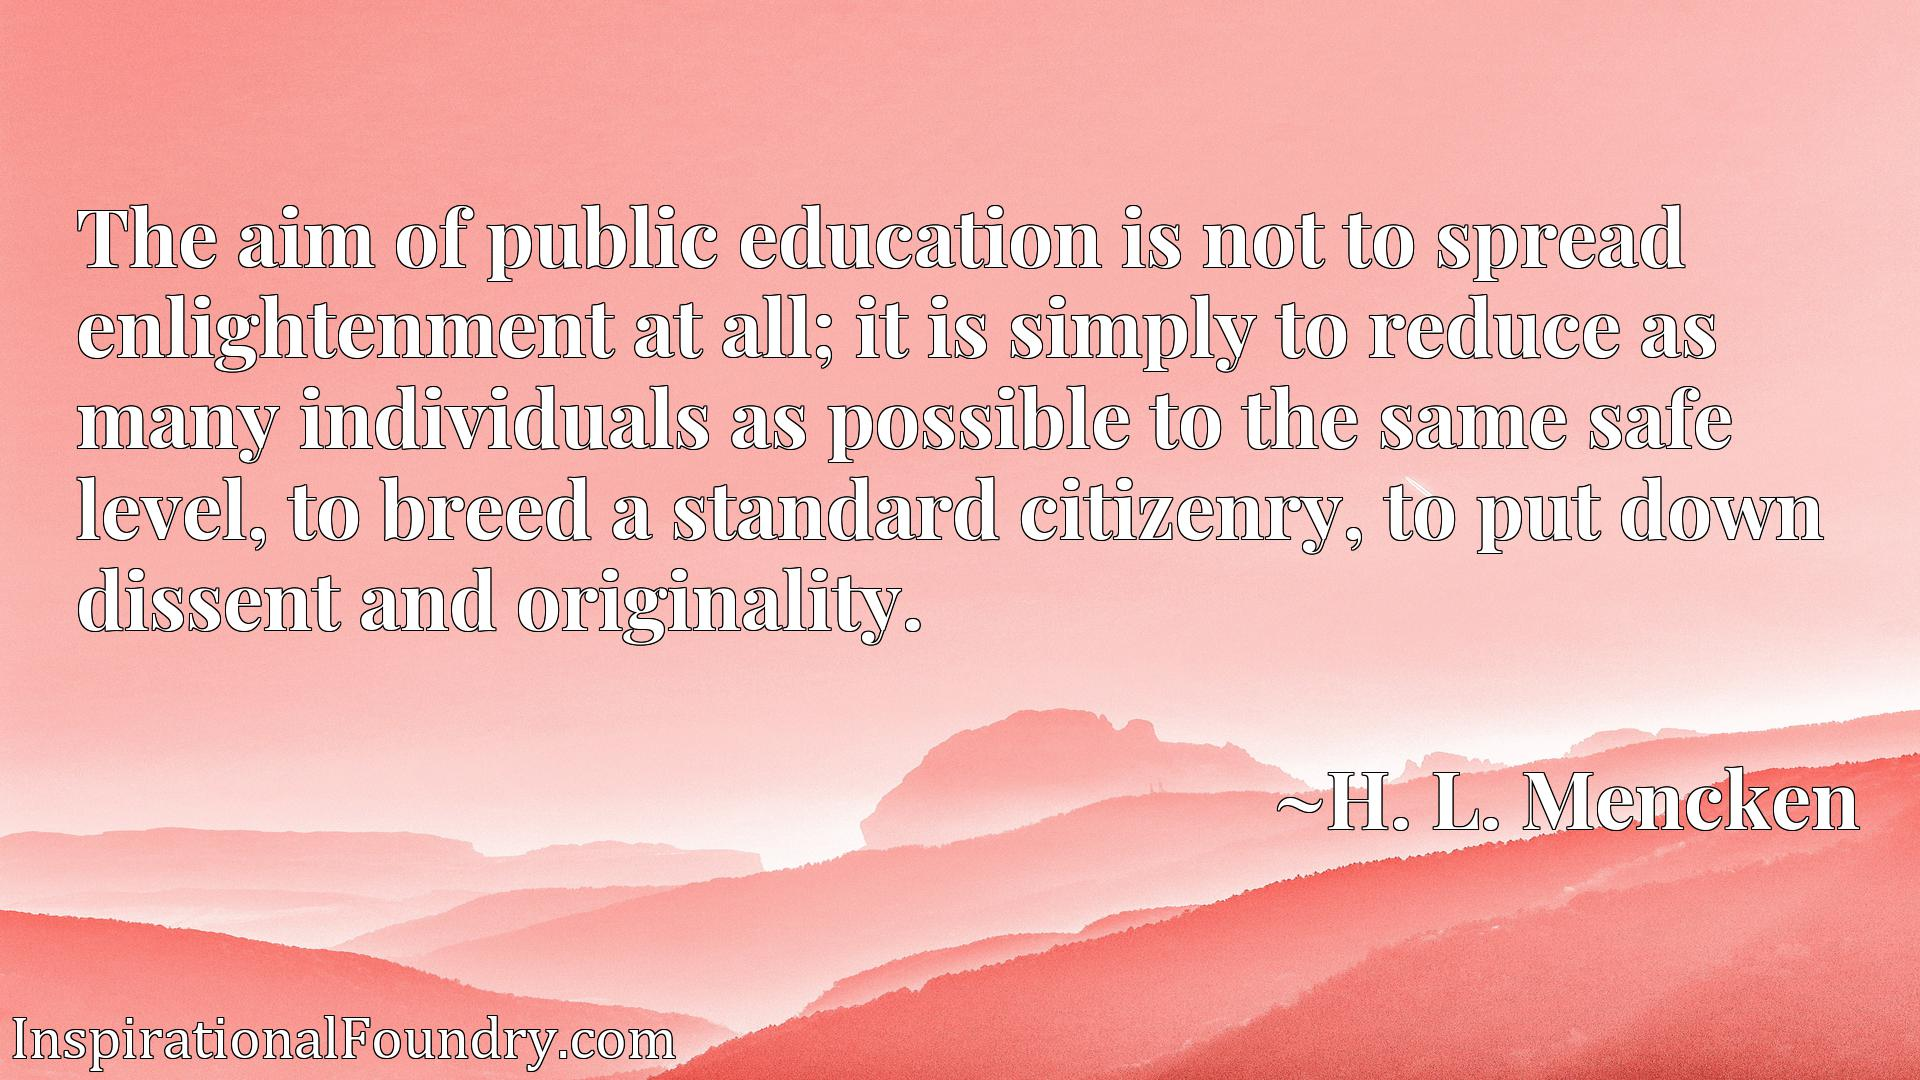 The aim of public education is not to spread enlightenment at all; it is simply to reduce as many individuals as possible to the same safe level, to breed a standard citizenry, to put down dissent and originality.